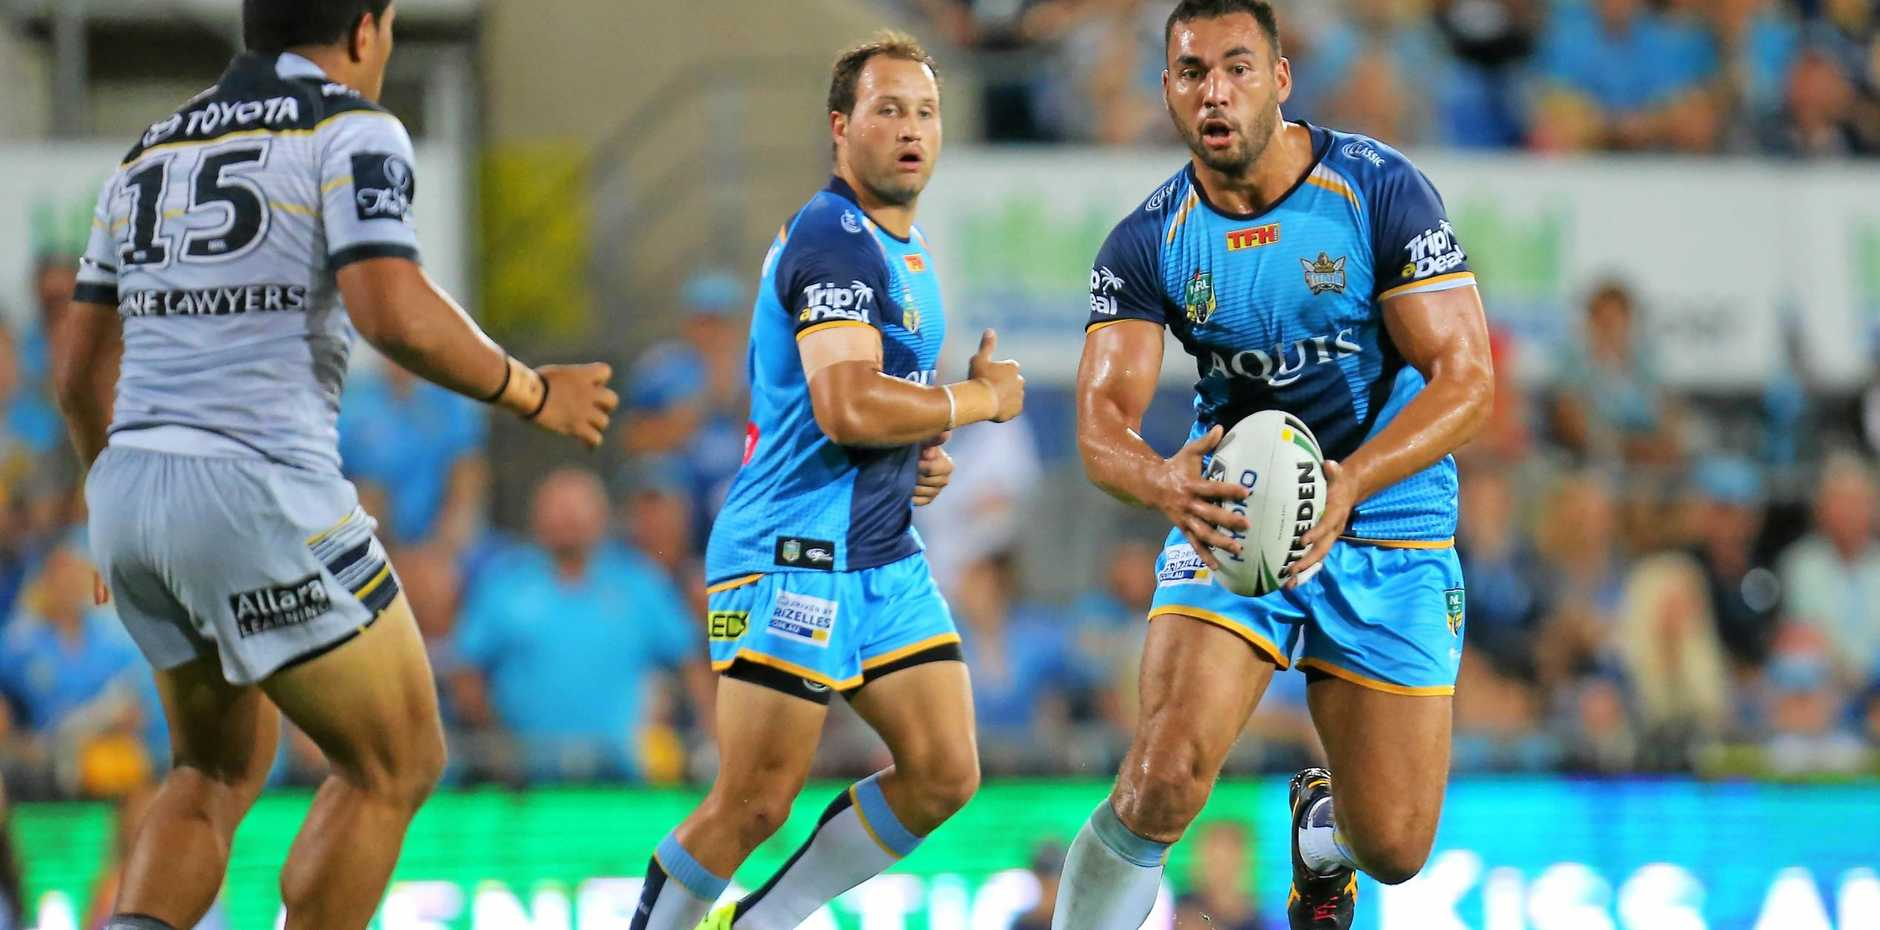 DRAWCARD: Gold Coast Titans captain Ryan James in action for the club during the Round 4 NRL clash against the North Queensland Cowboys last season.